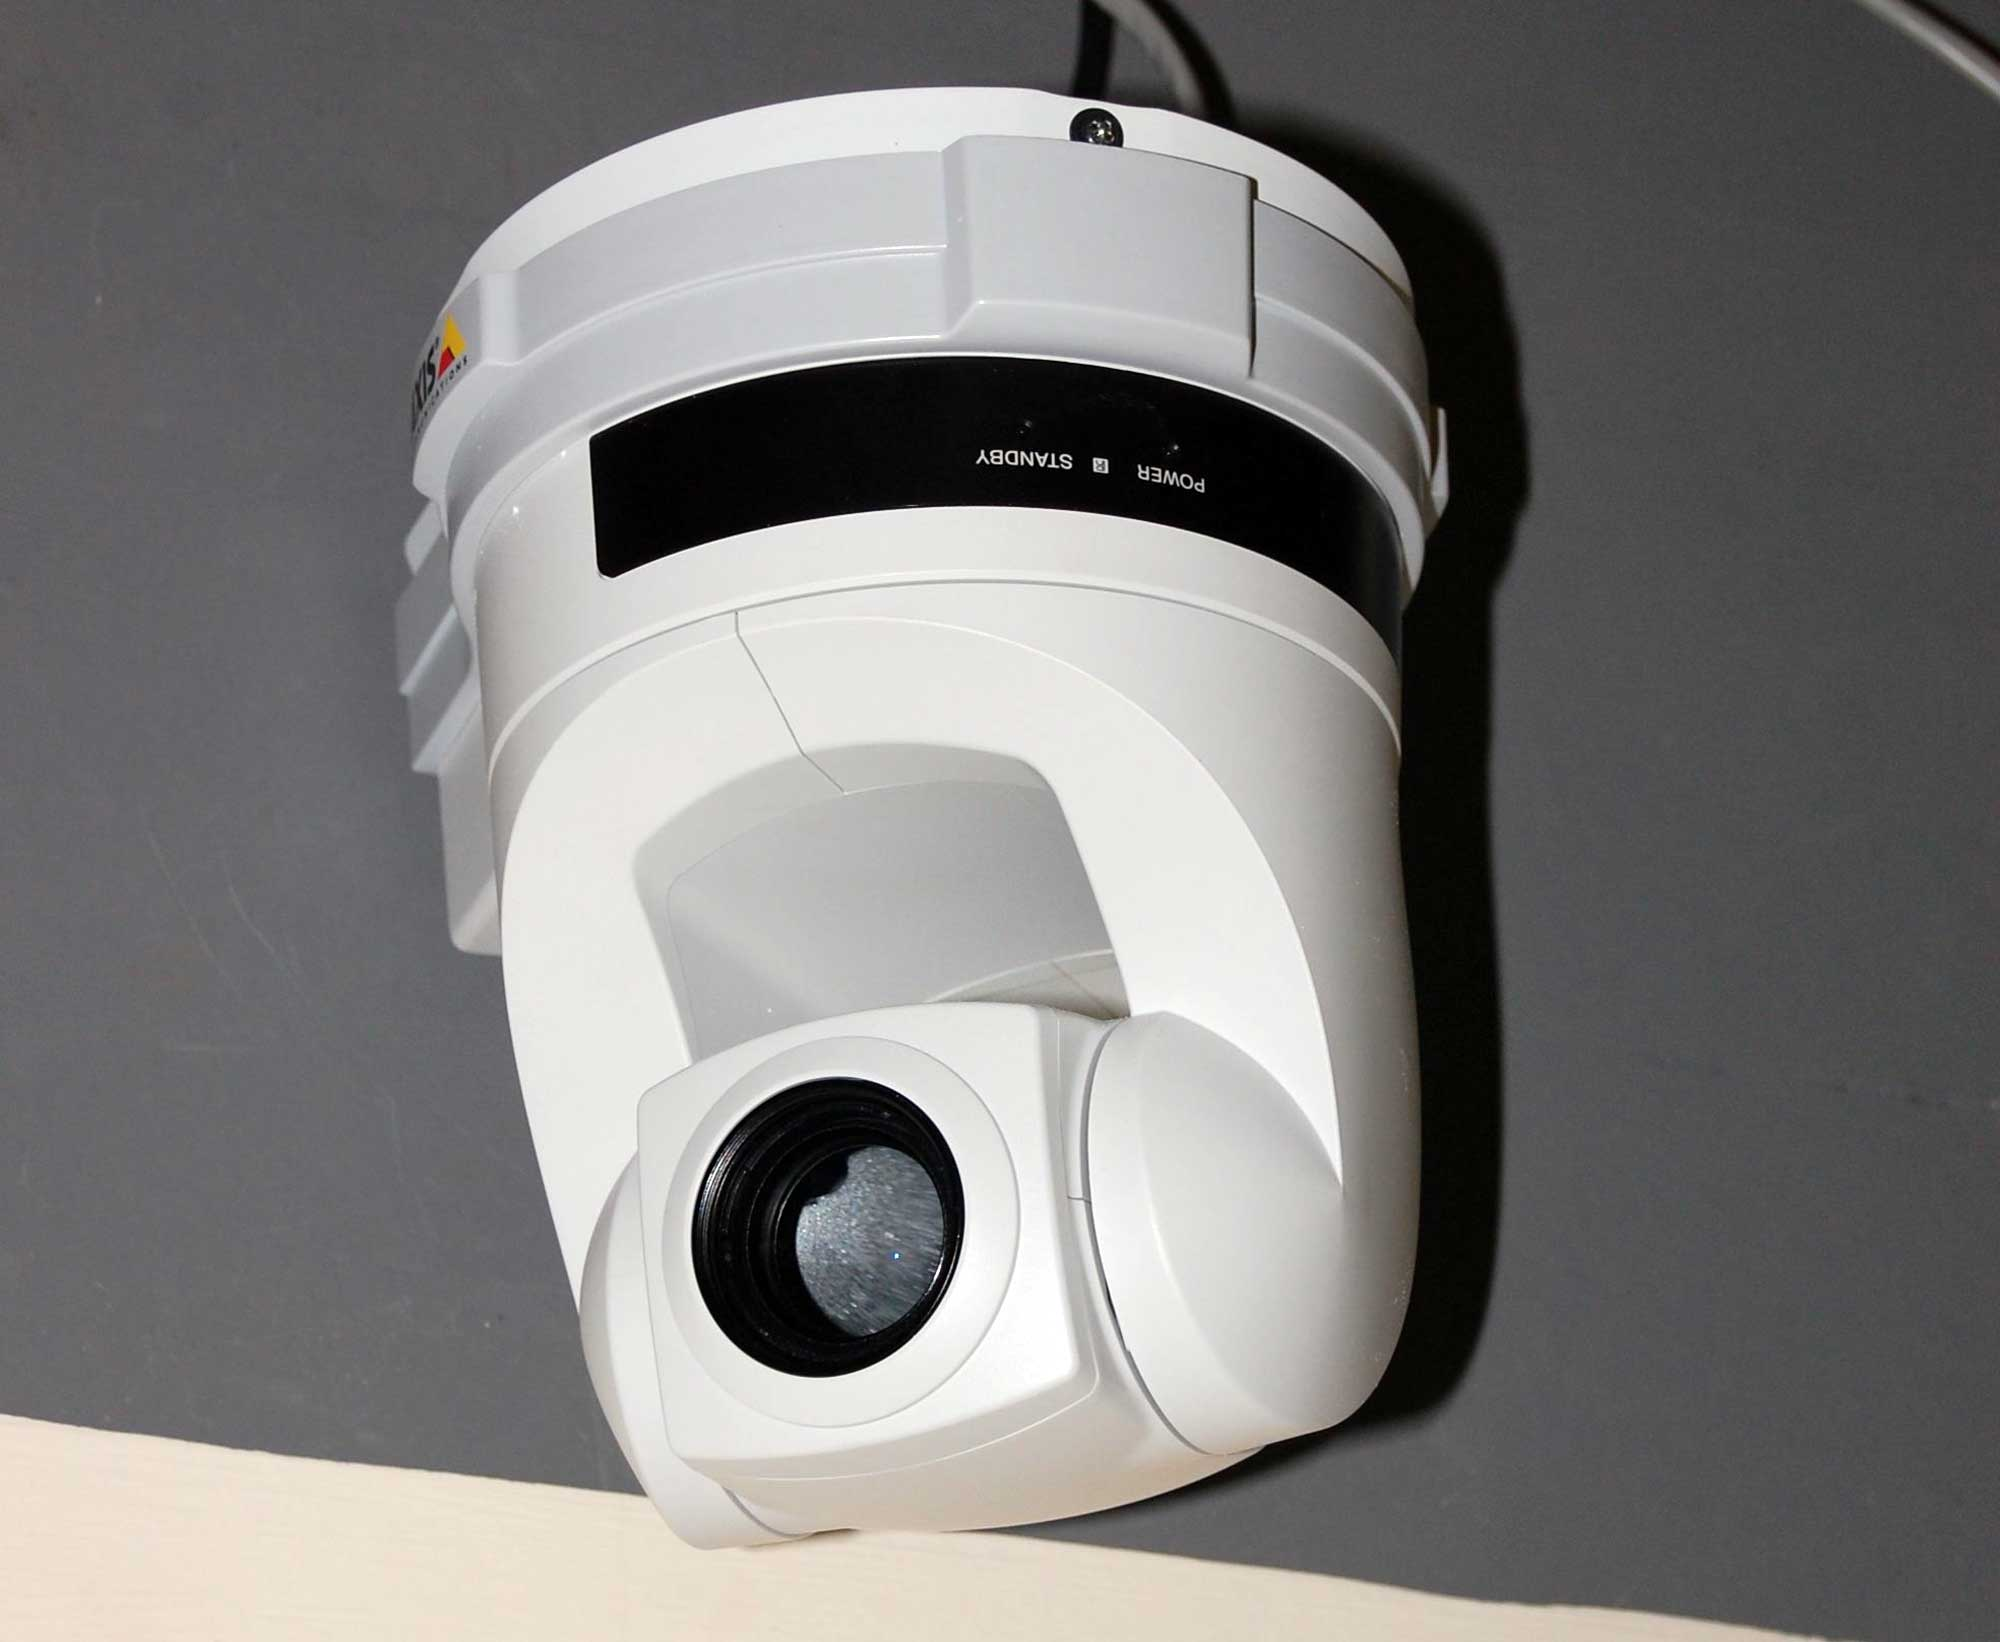 PTZ camera for security